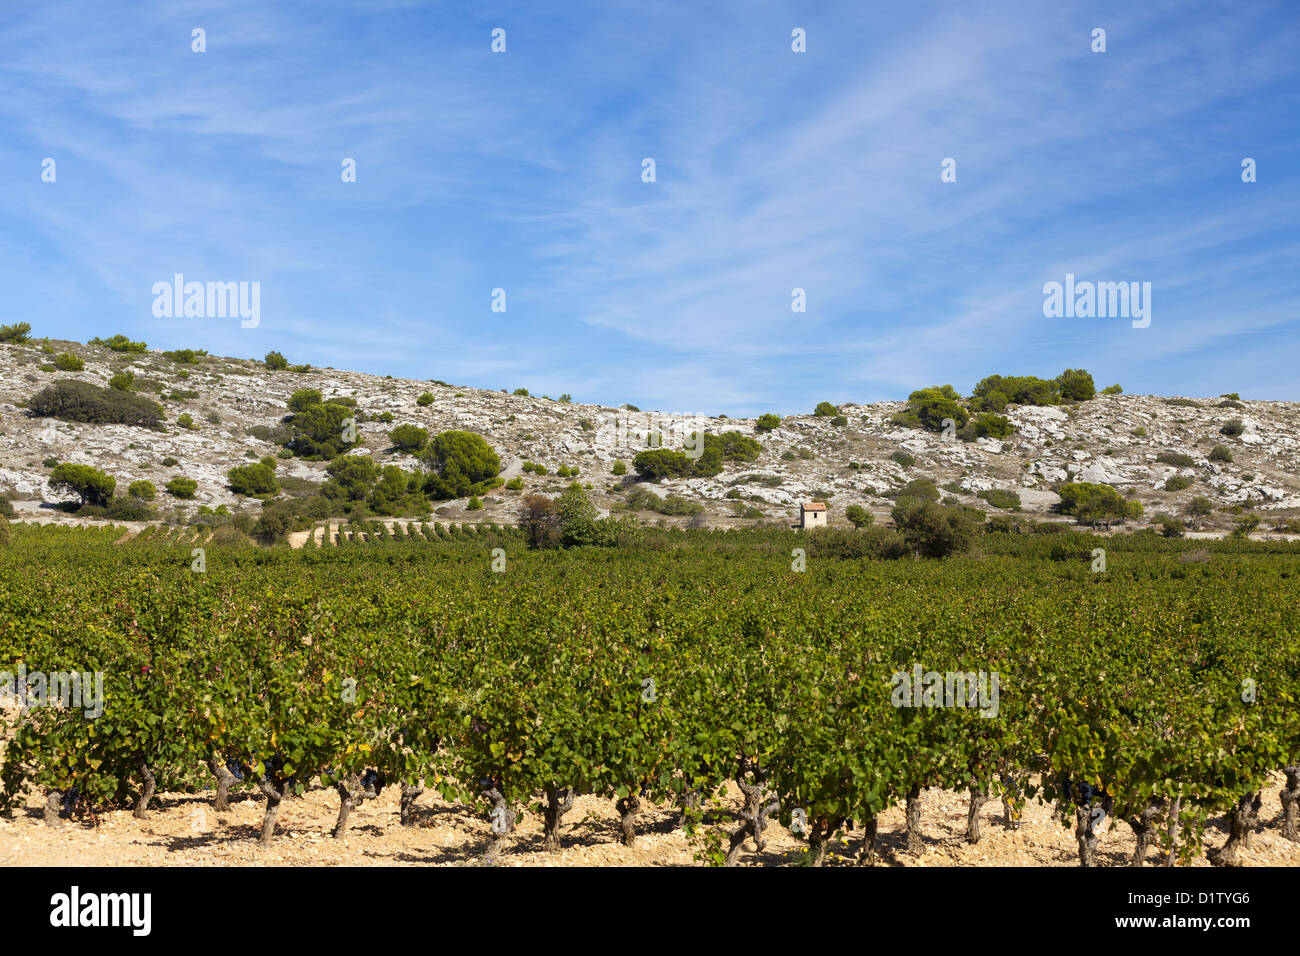 Vineyards of the winegrowers St. Martin in Gruissan in southern France - Stock Image